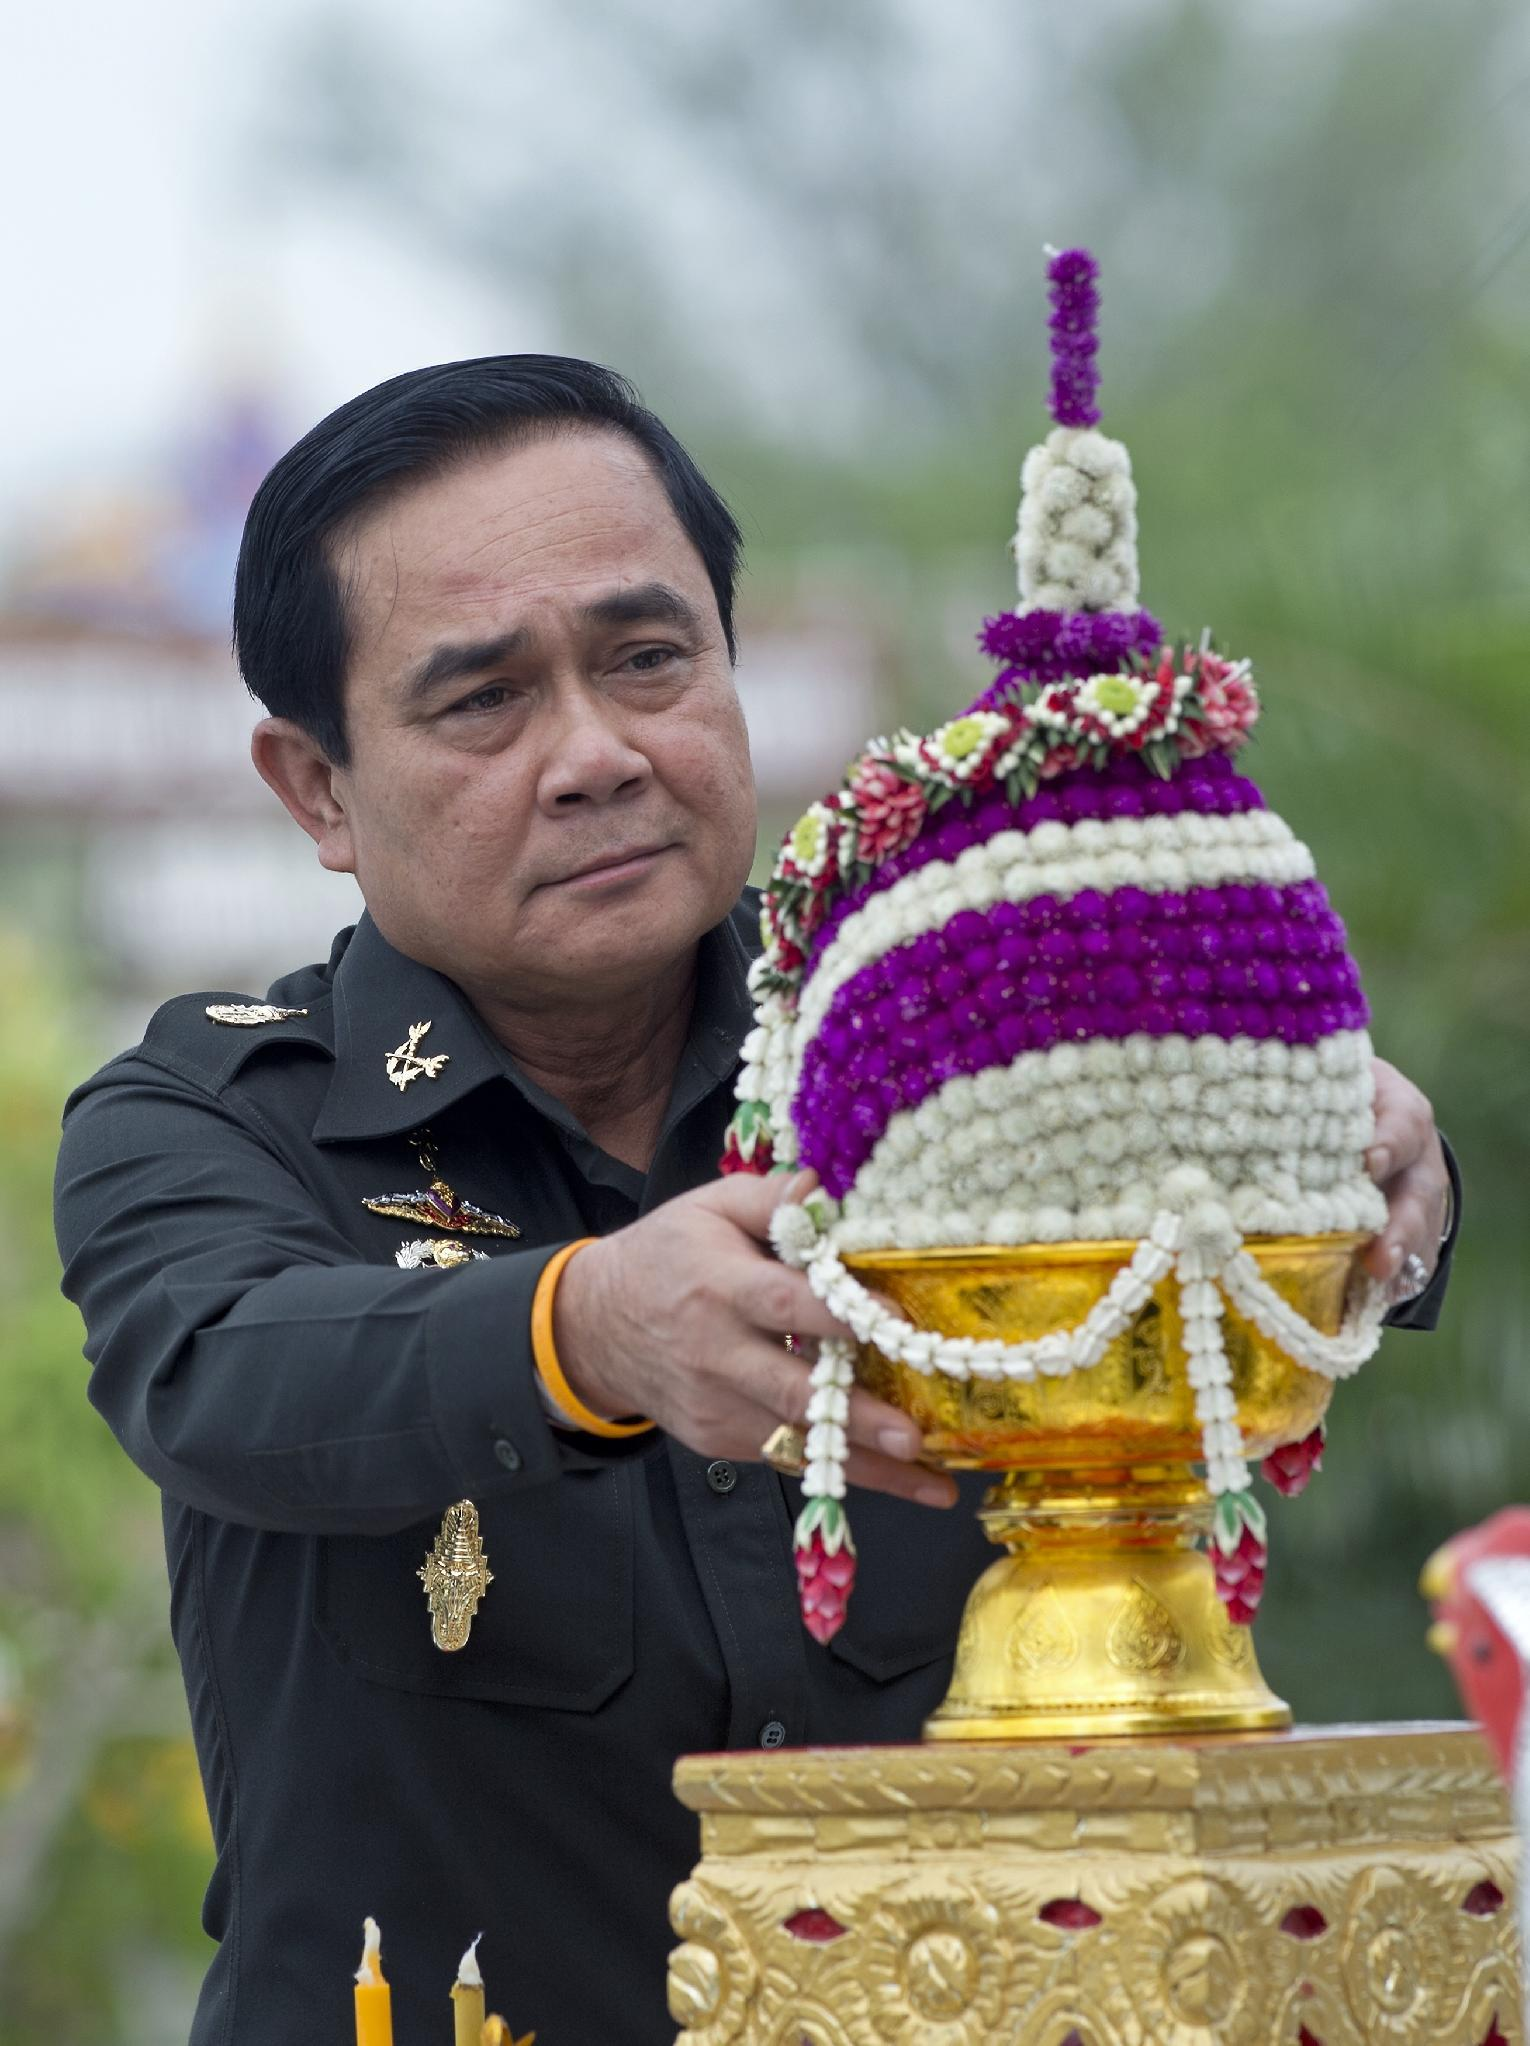 General Prayut Chan-O-Cha during the military anniversary's 21st Infantry Regiment in Chonburi province on August 21, 2014 (AFP Photo/Pornchai Kittiwongsakul)